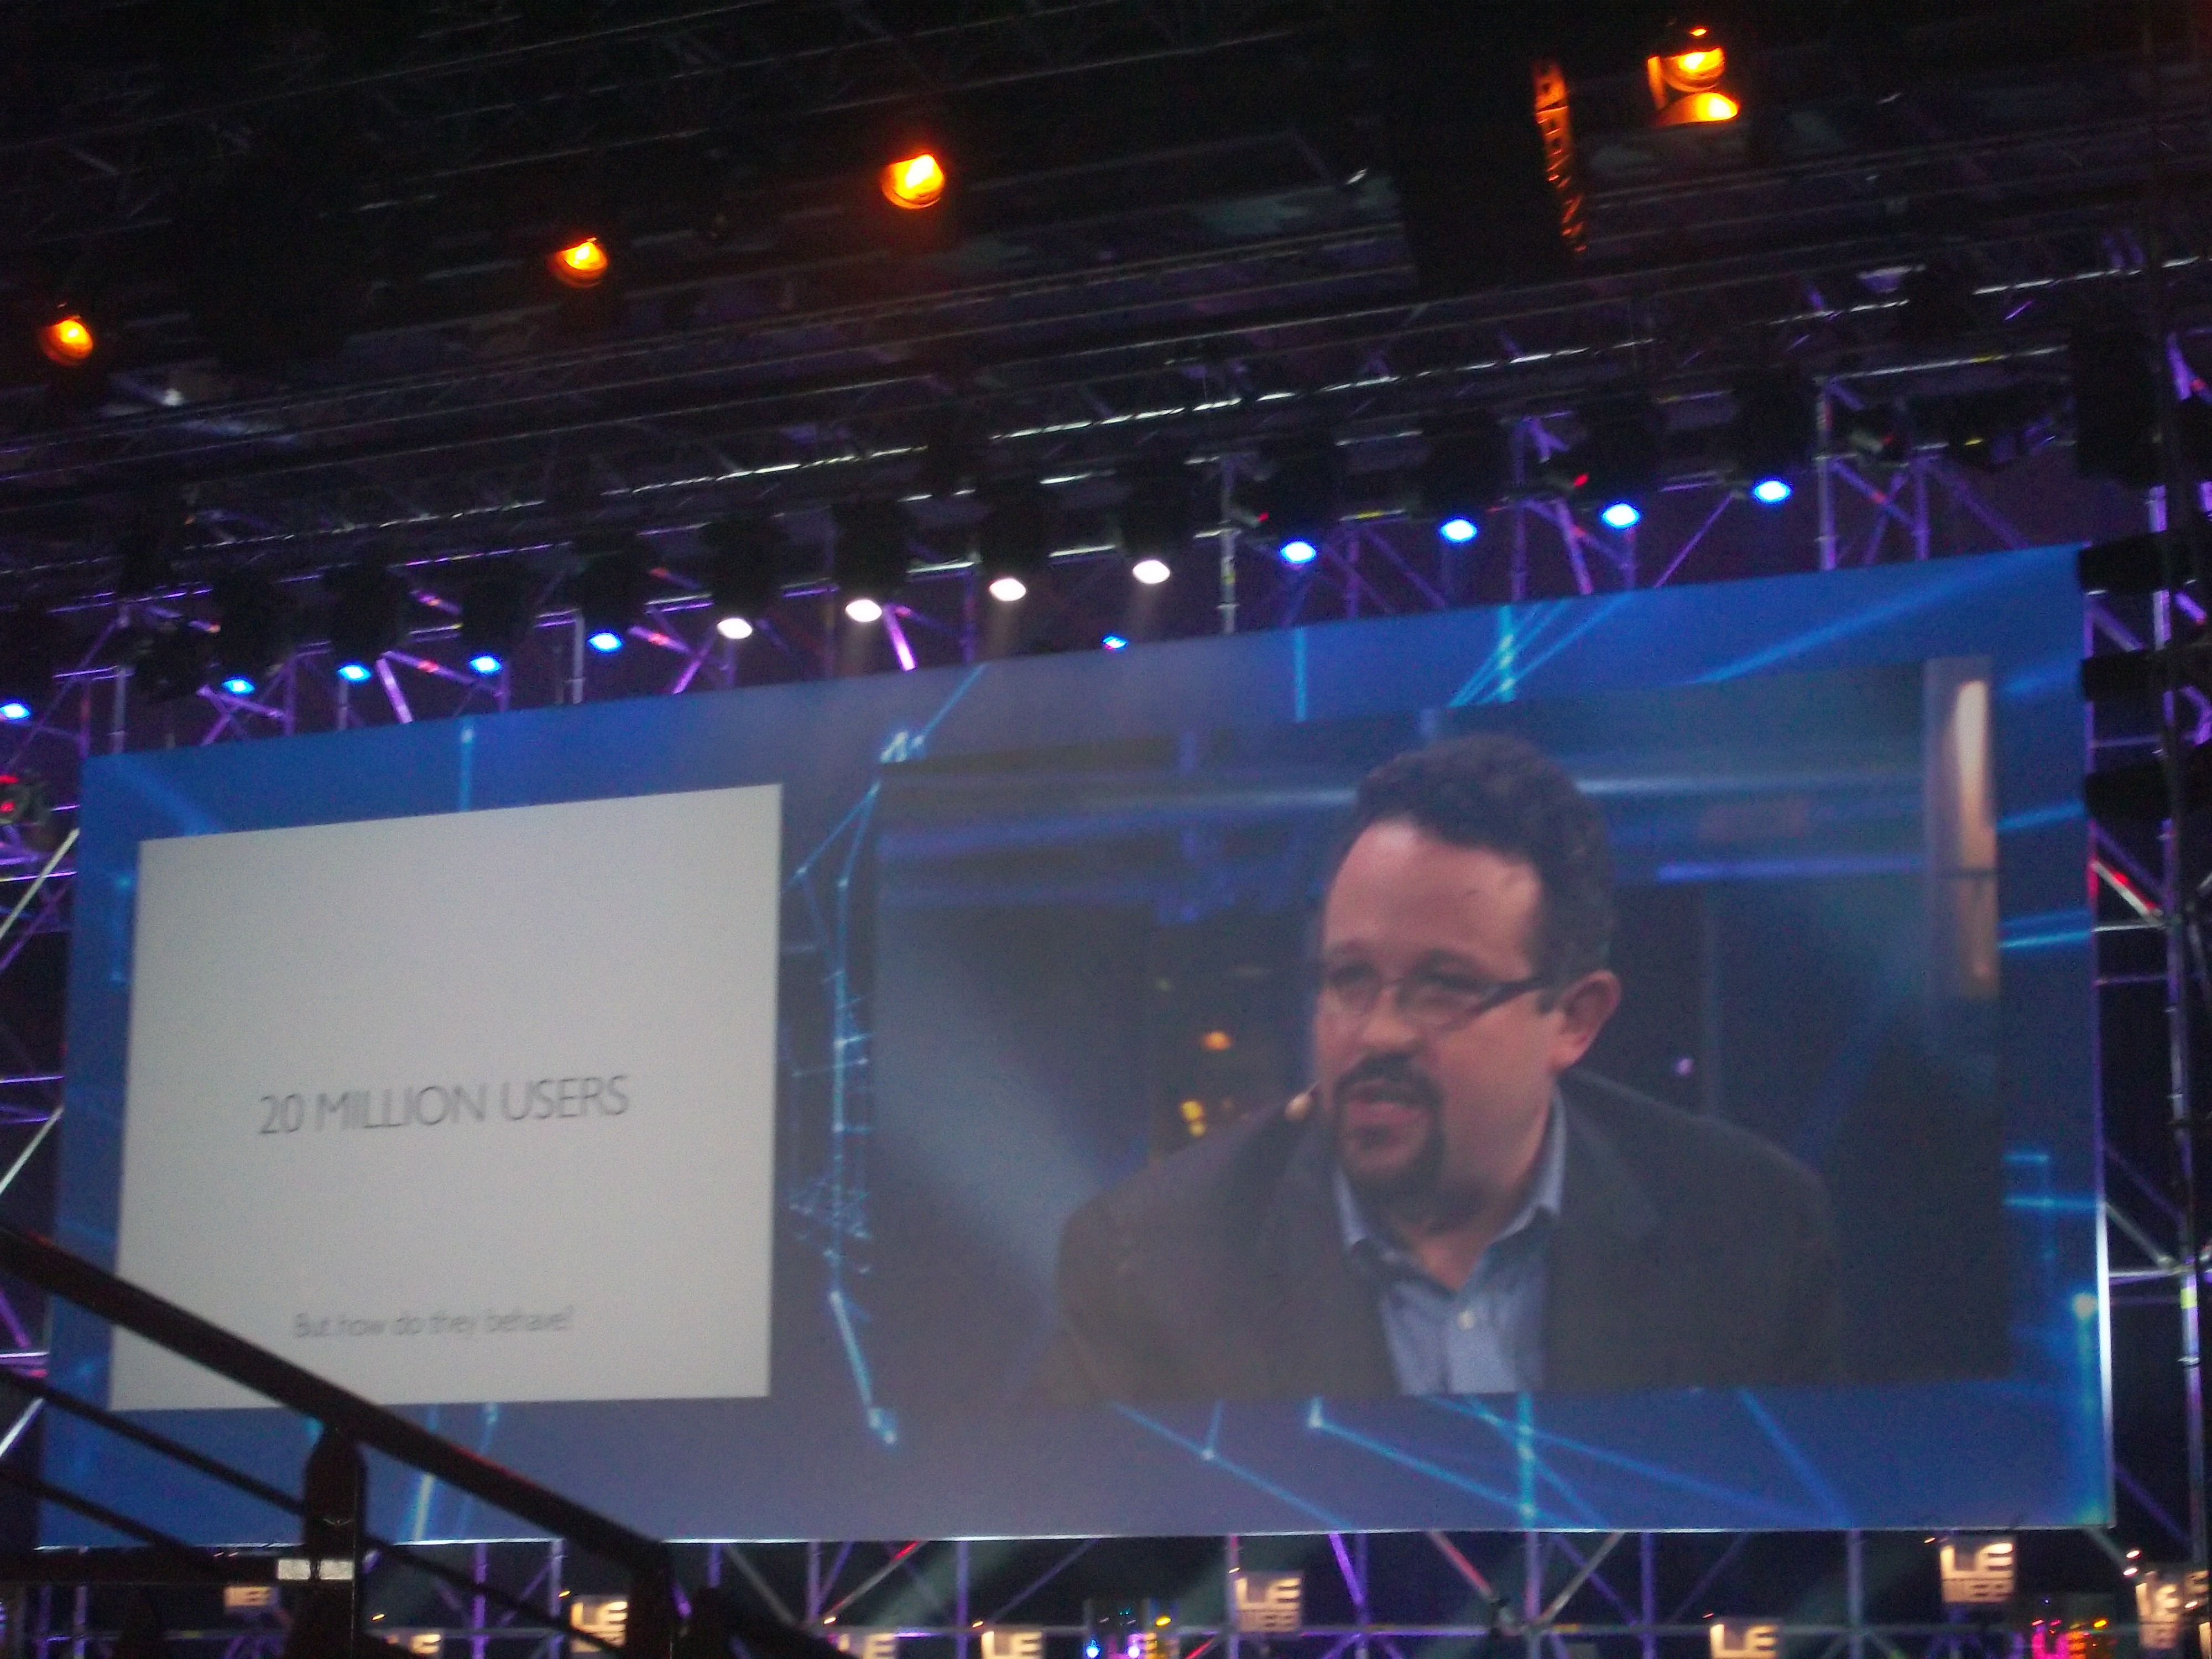 Le Web'11 : Un partenariat entre Orange et Evernote